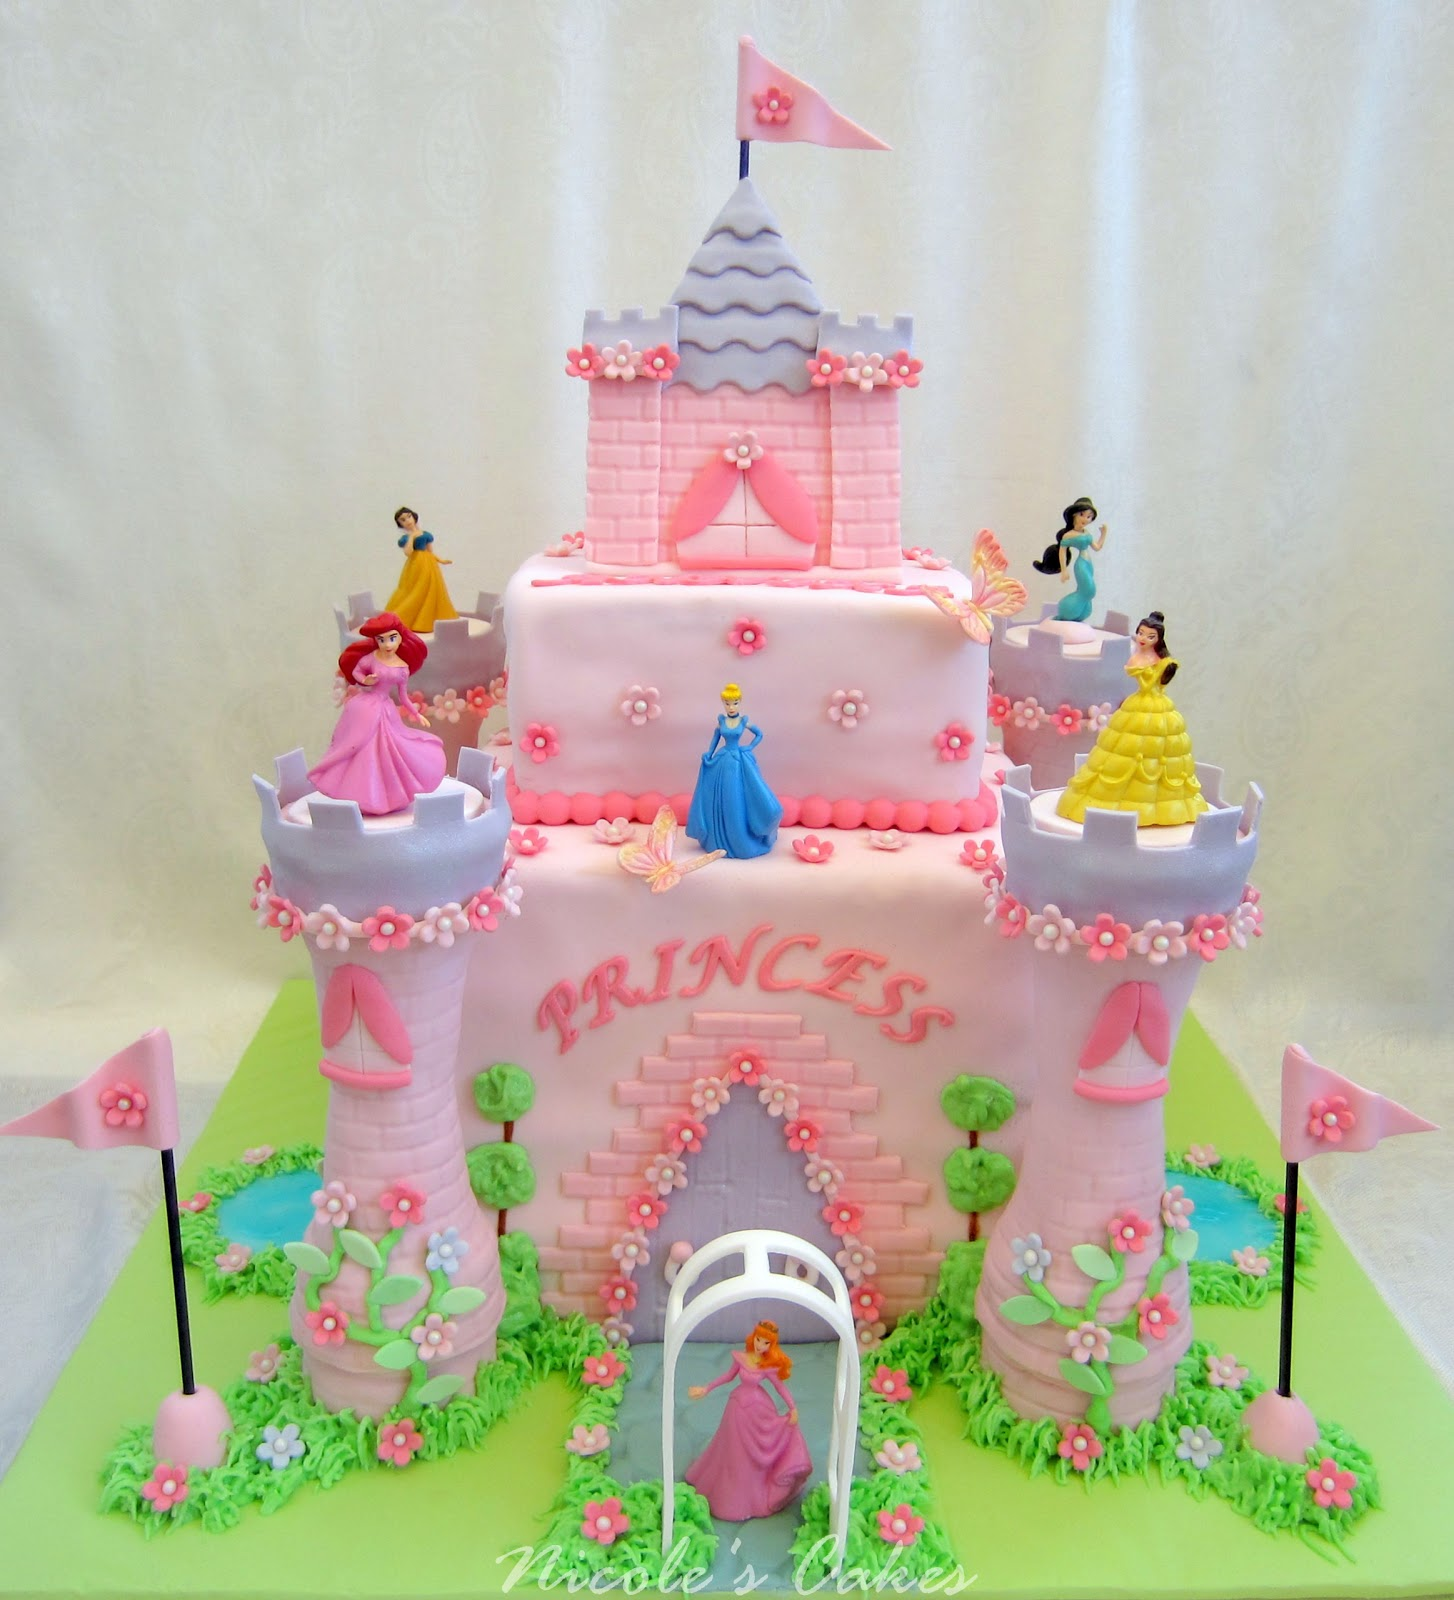 On Birthday Cakes: Princess Castle Cake